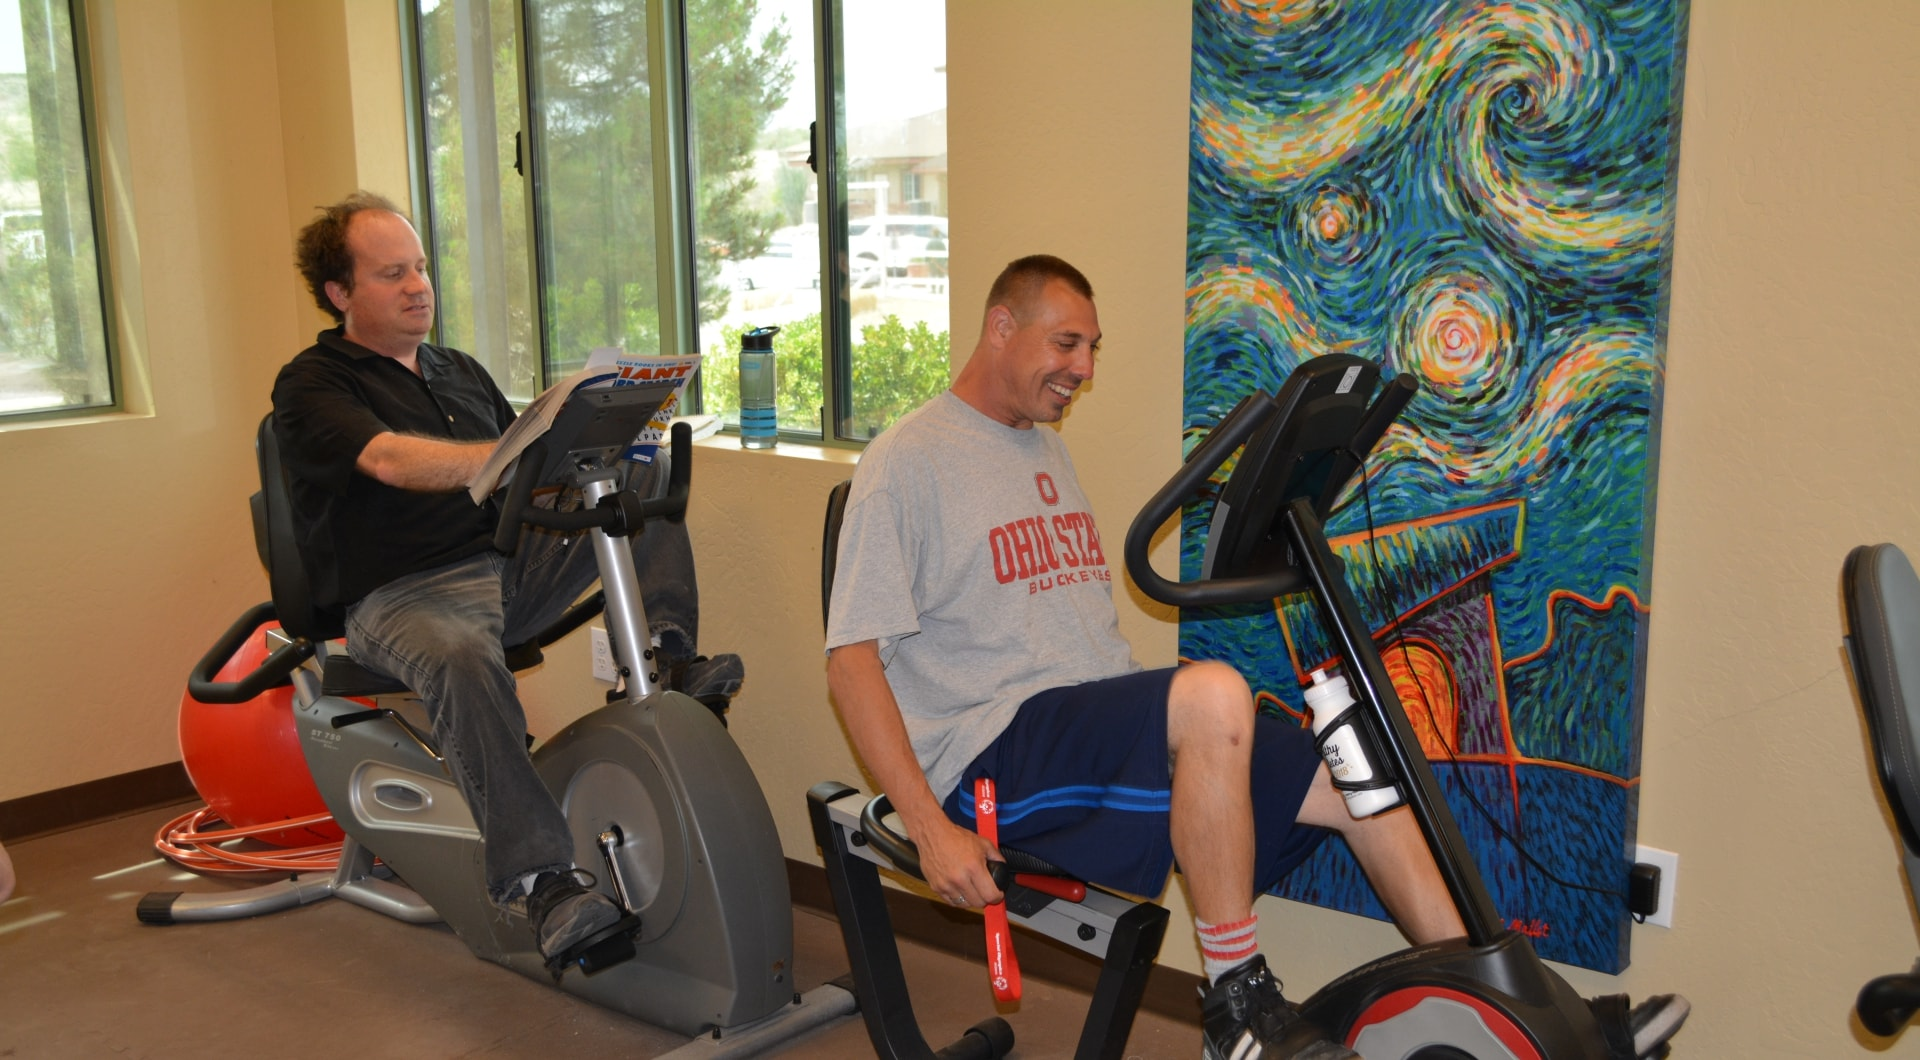 Exercise bikes being used by two adults with developmental disabilities